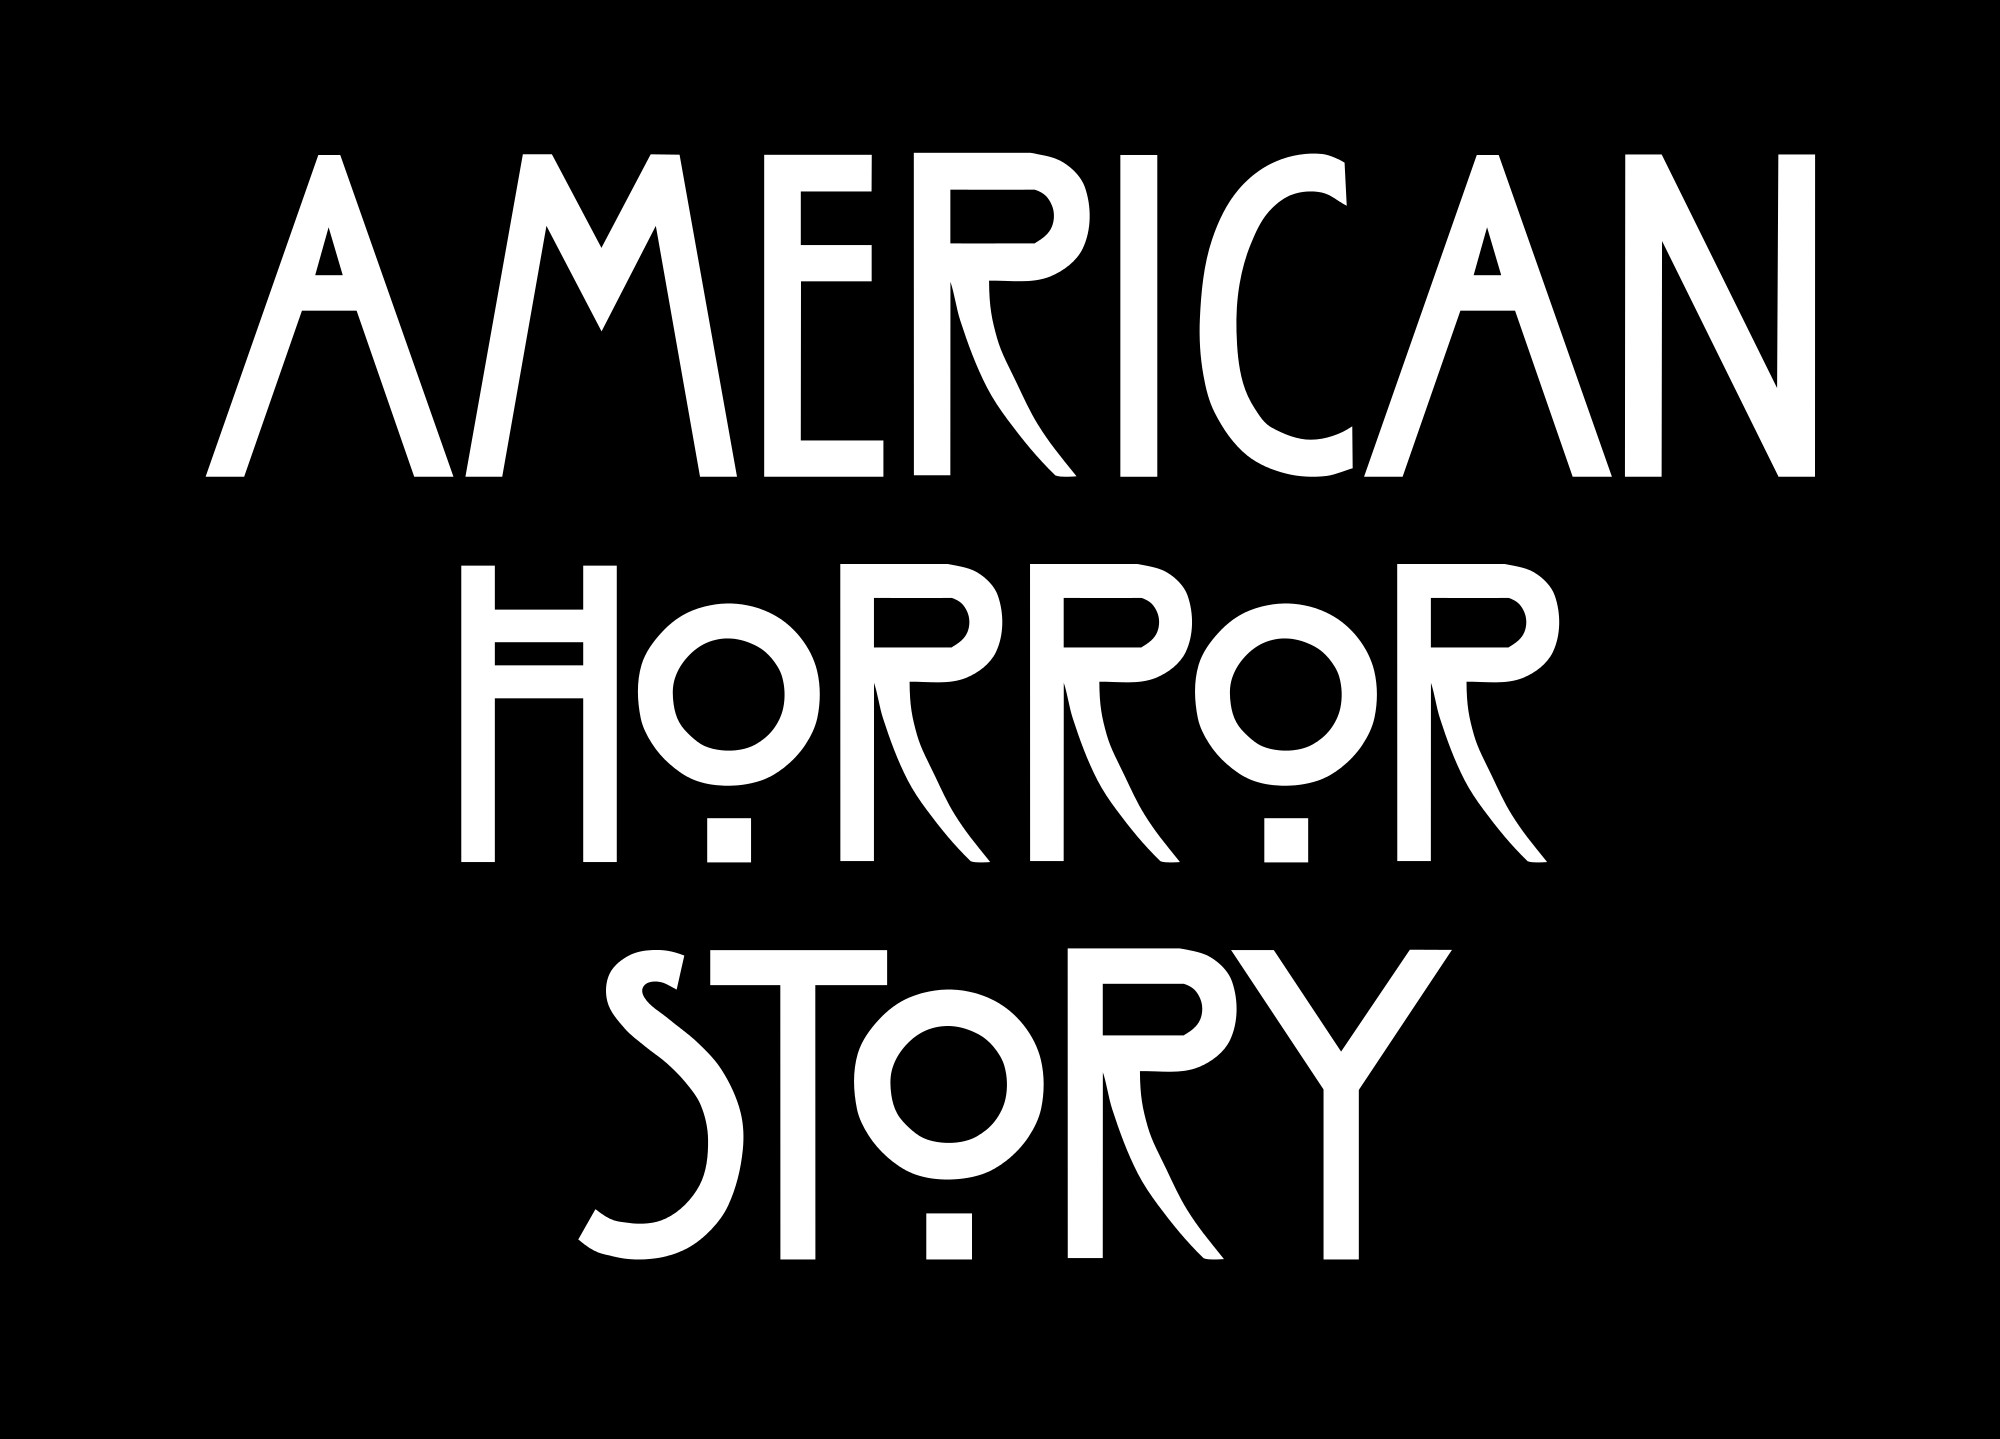 american horror story logo hd wallpaper 65232